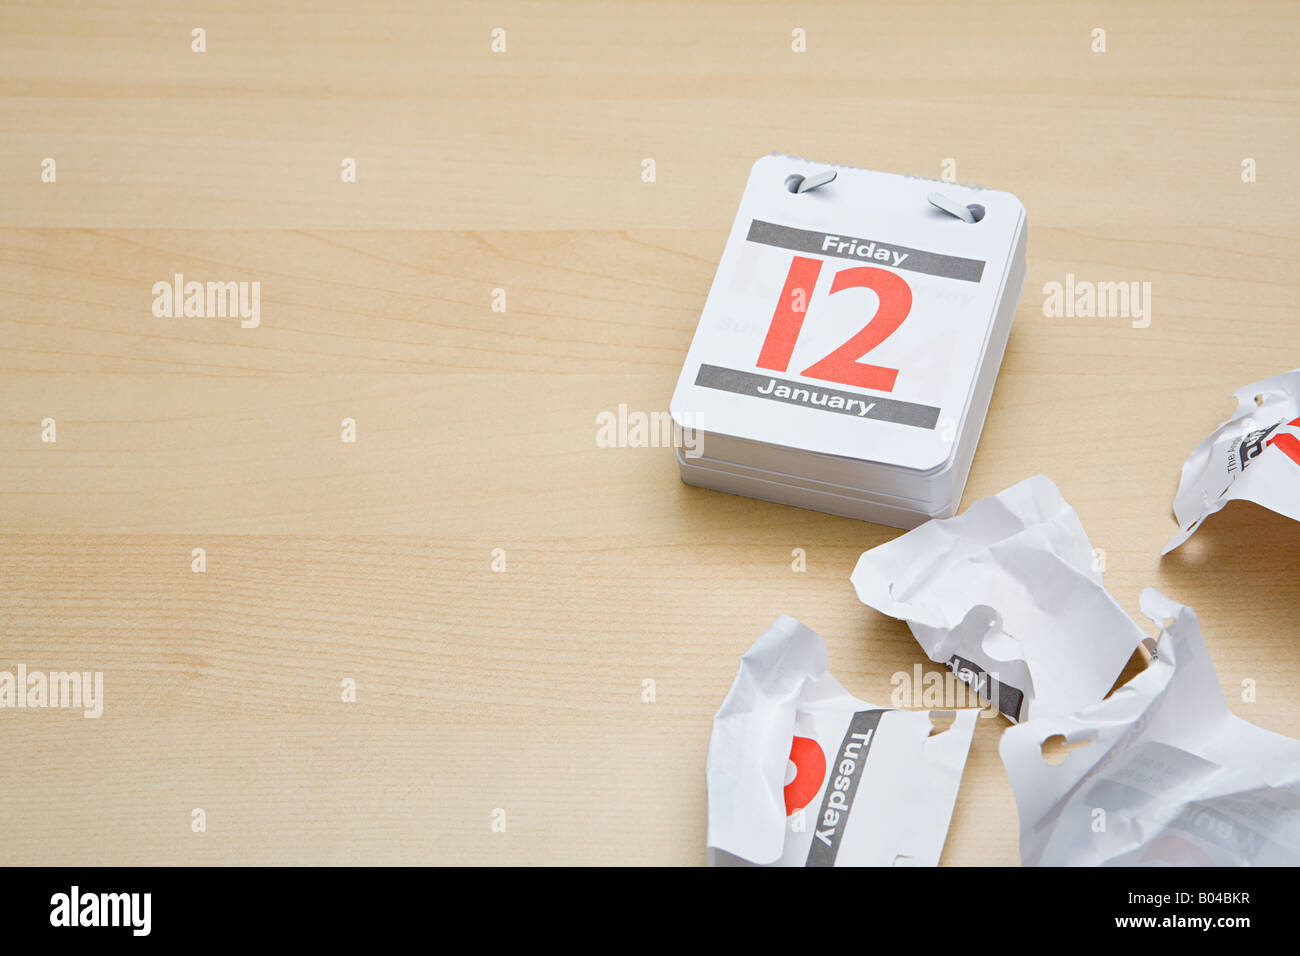 Crumpled calendar pages - Stock Image